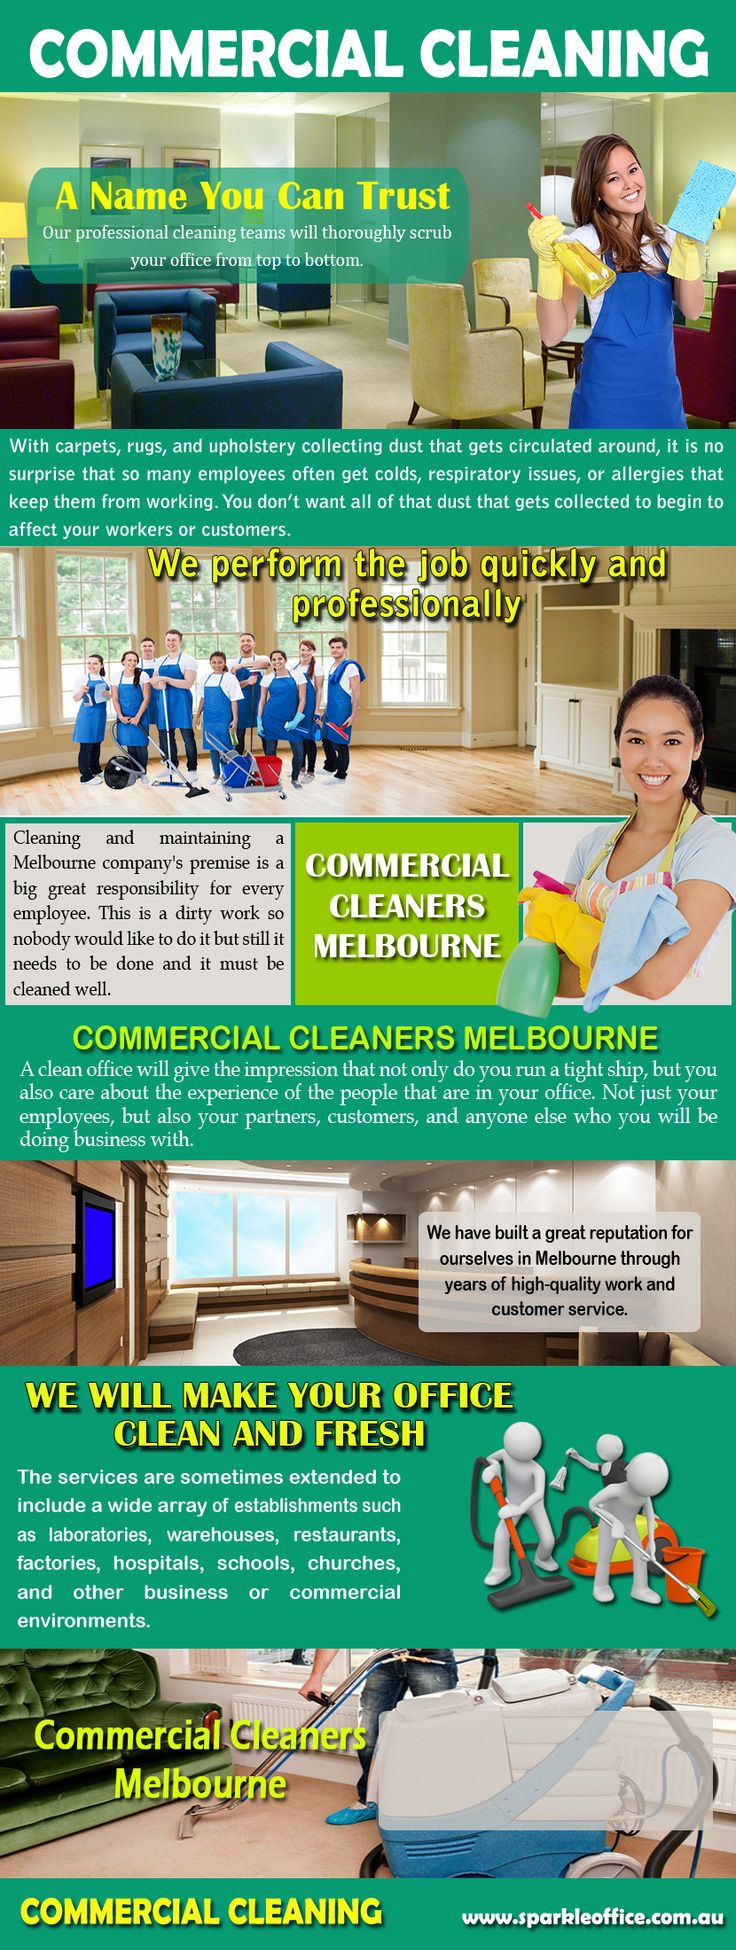 17 best ideas about cleaning services company toxic commercial commercial cleaning services commercial cleaners commercial products cleaning services company service companies regular toxic